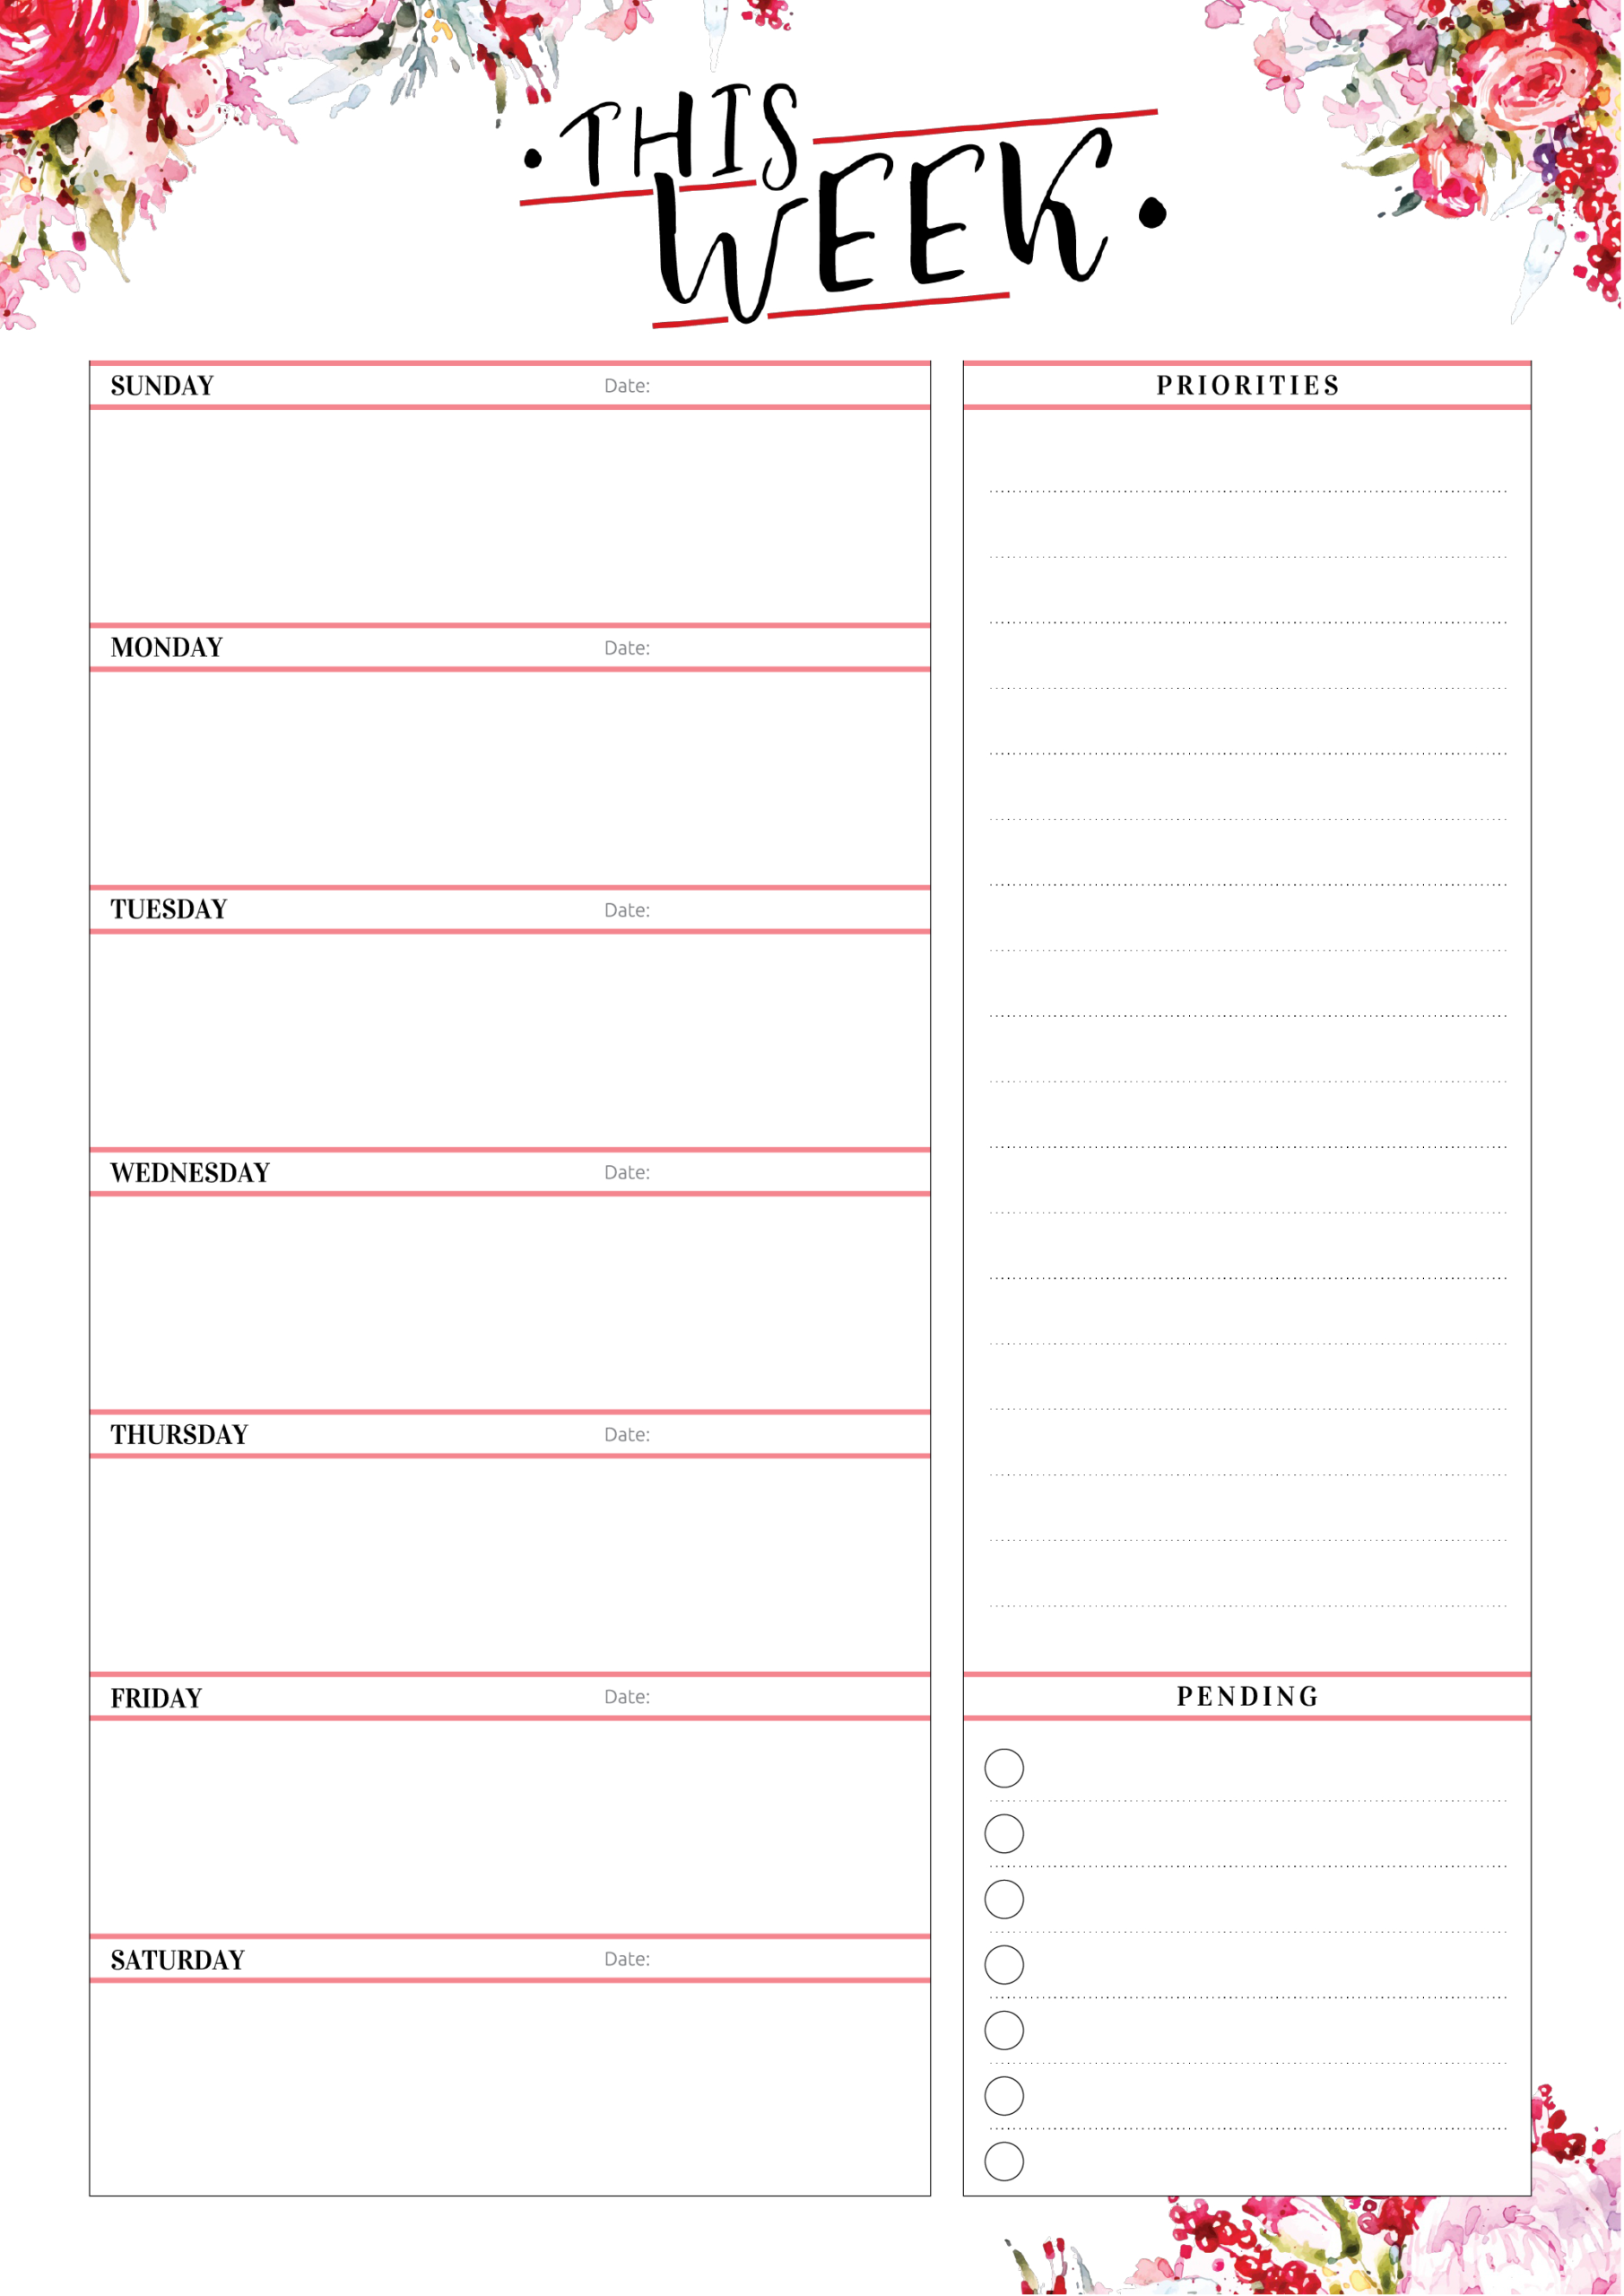 Free Printable Weekly Planner With Priorities Pdf Download